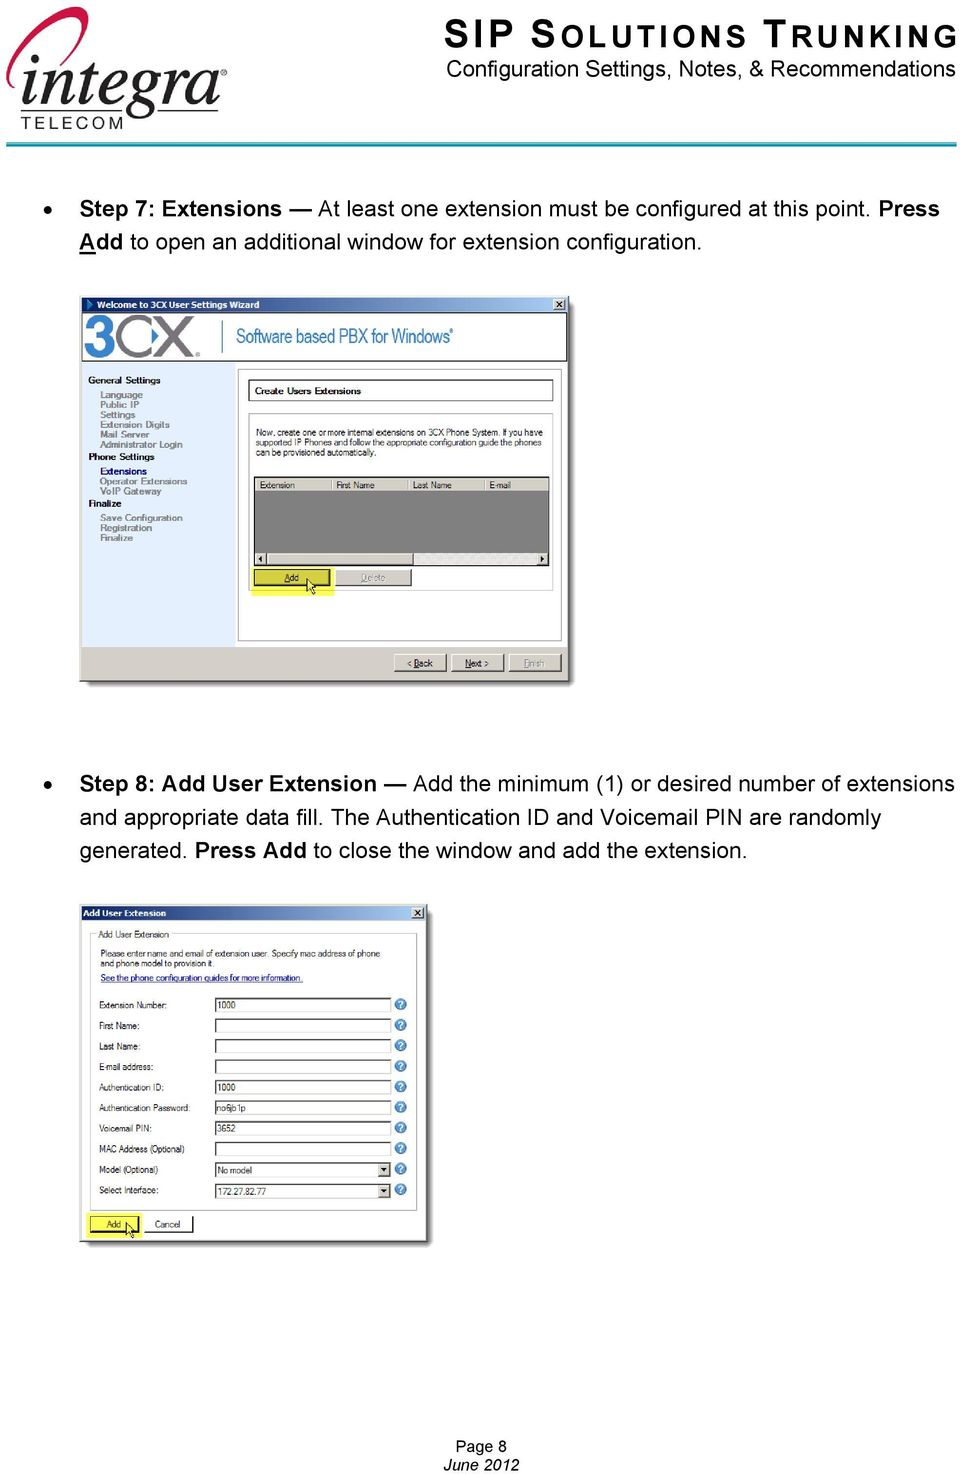 Step 8: Add User Extension Add the minimum (1) or desired number of extensions and